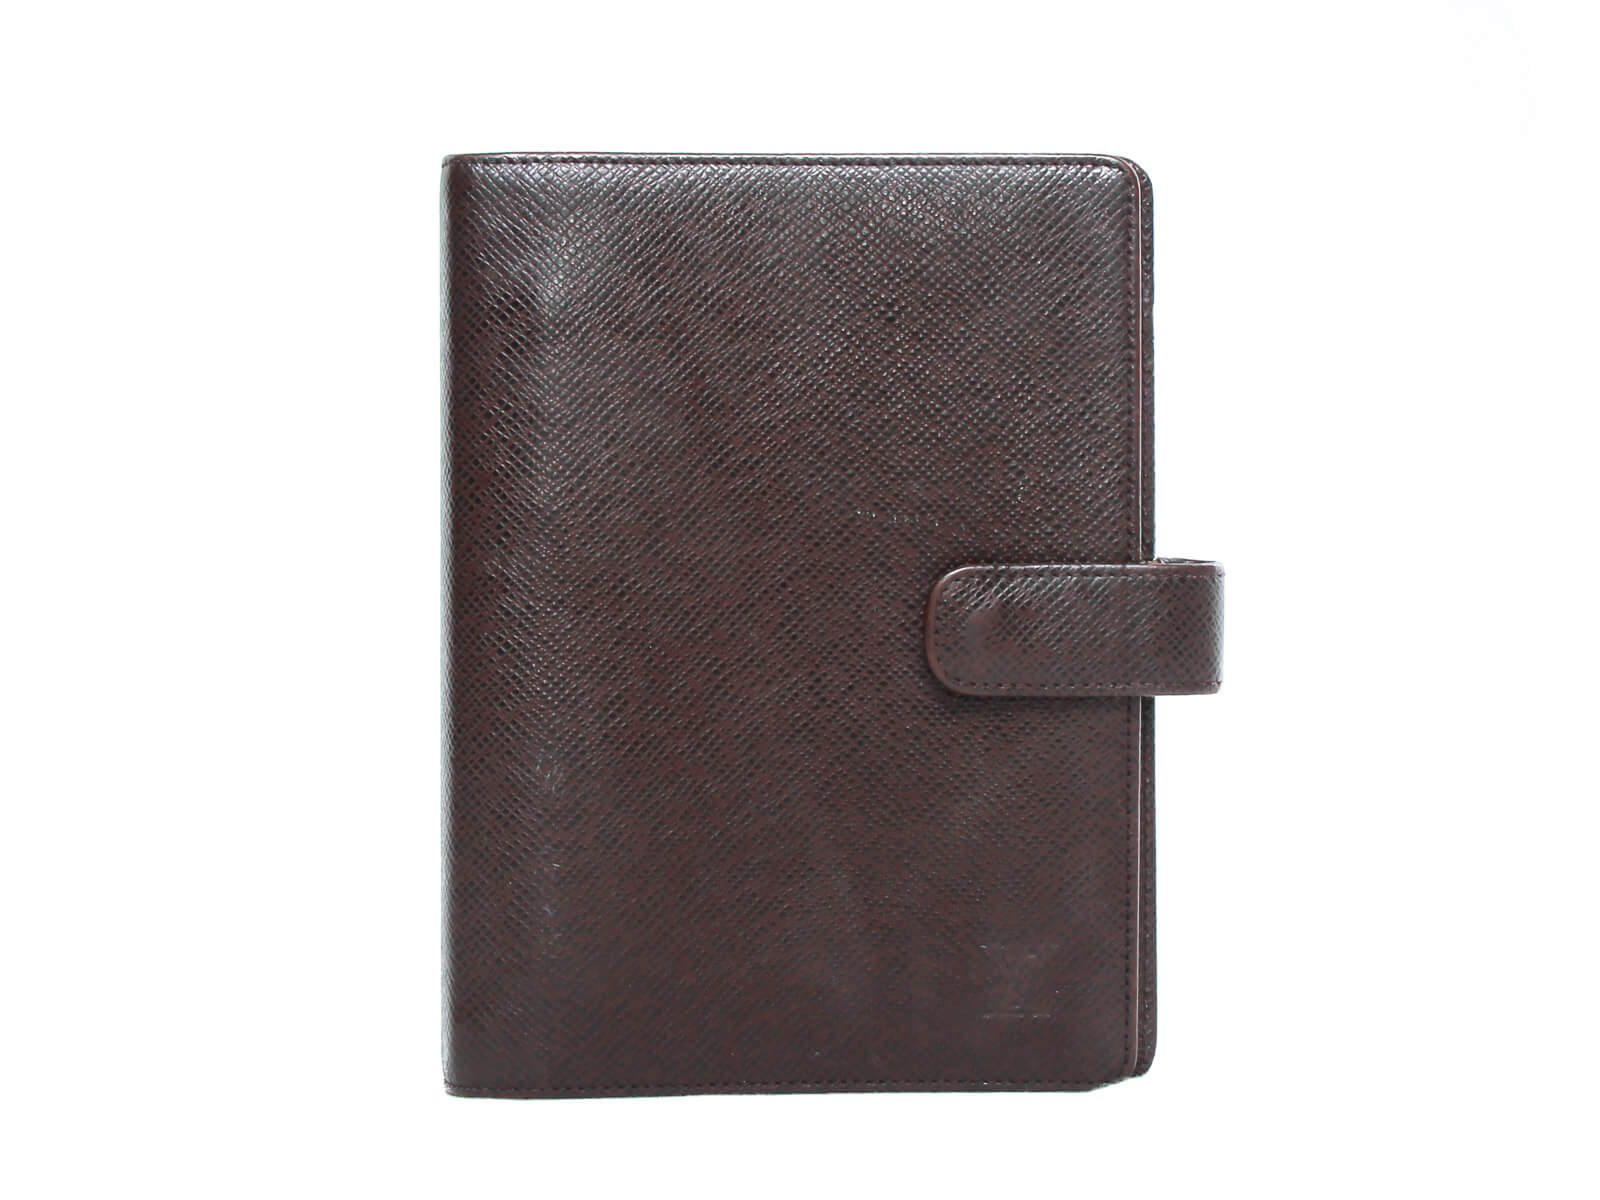 Authentic Louis Vuitton Agenda Functionnel MM Taiga leather